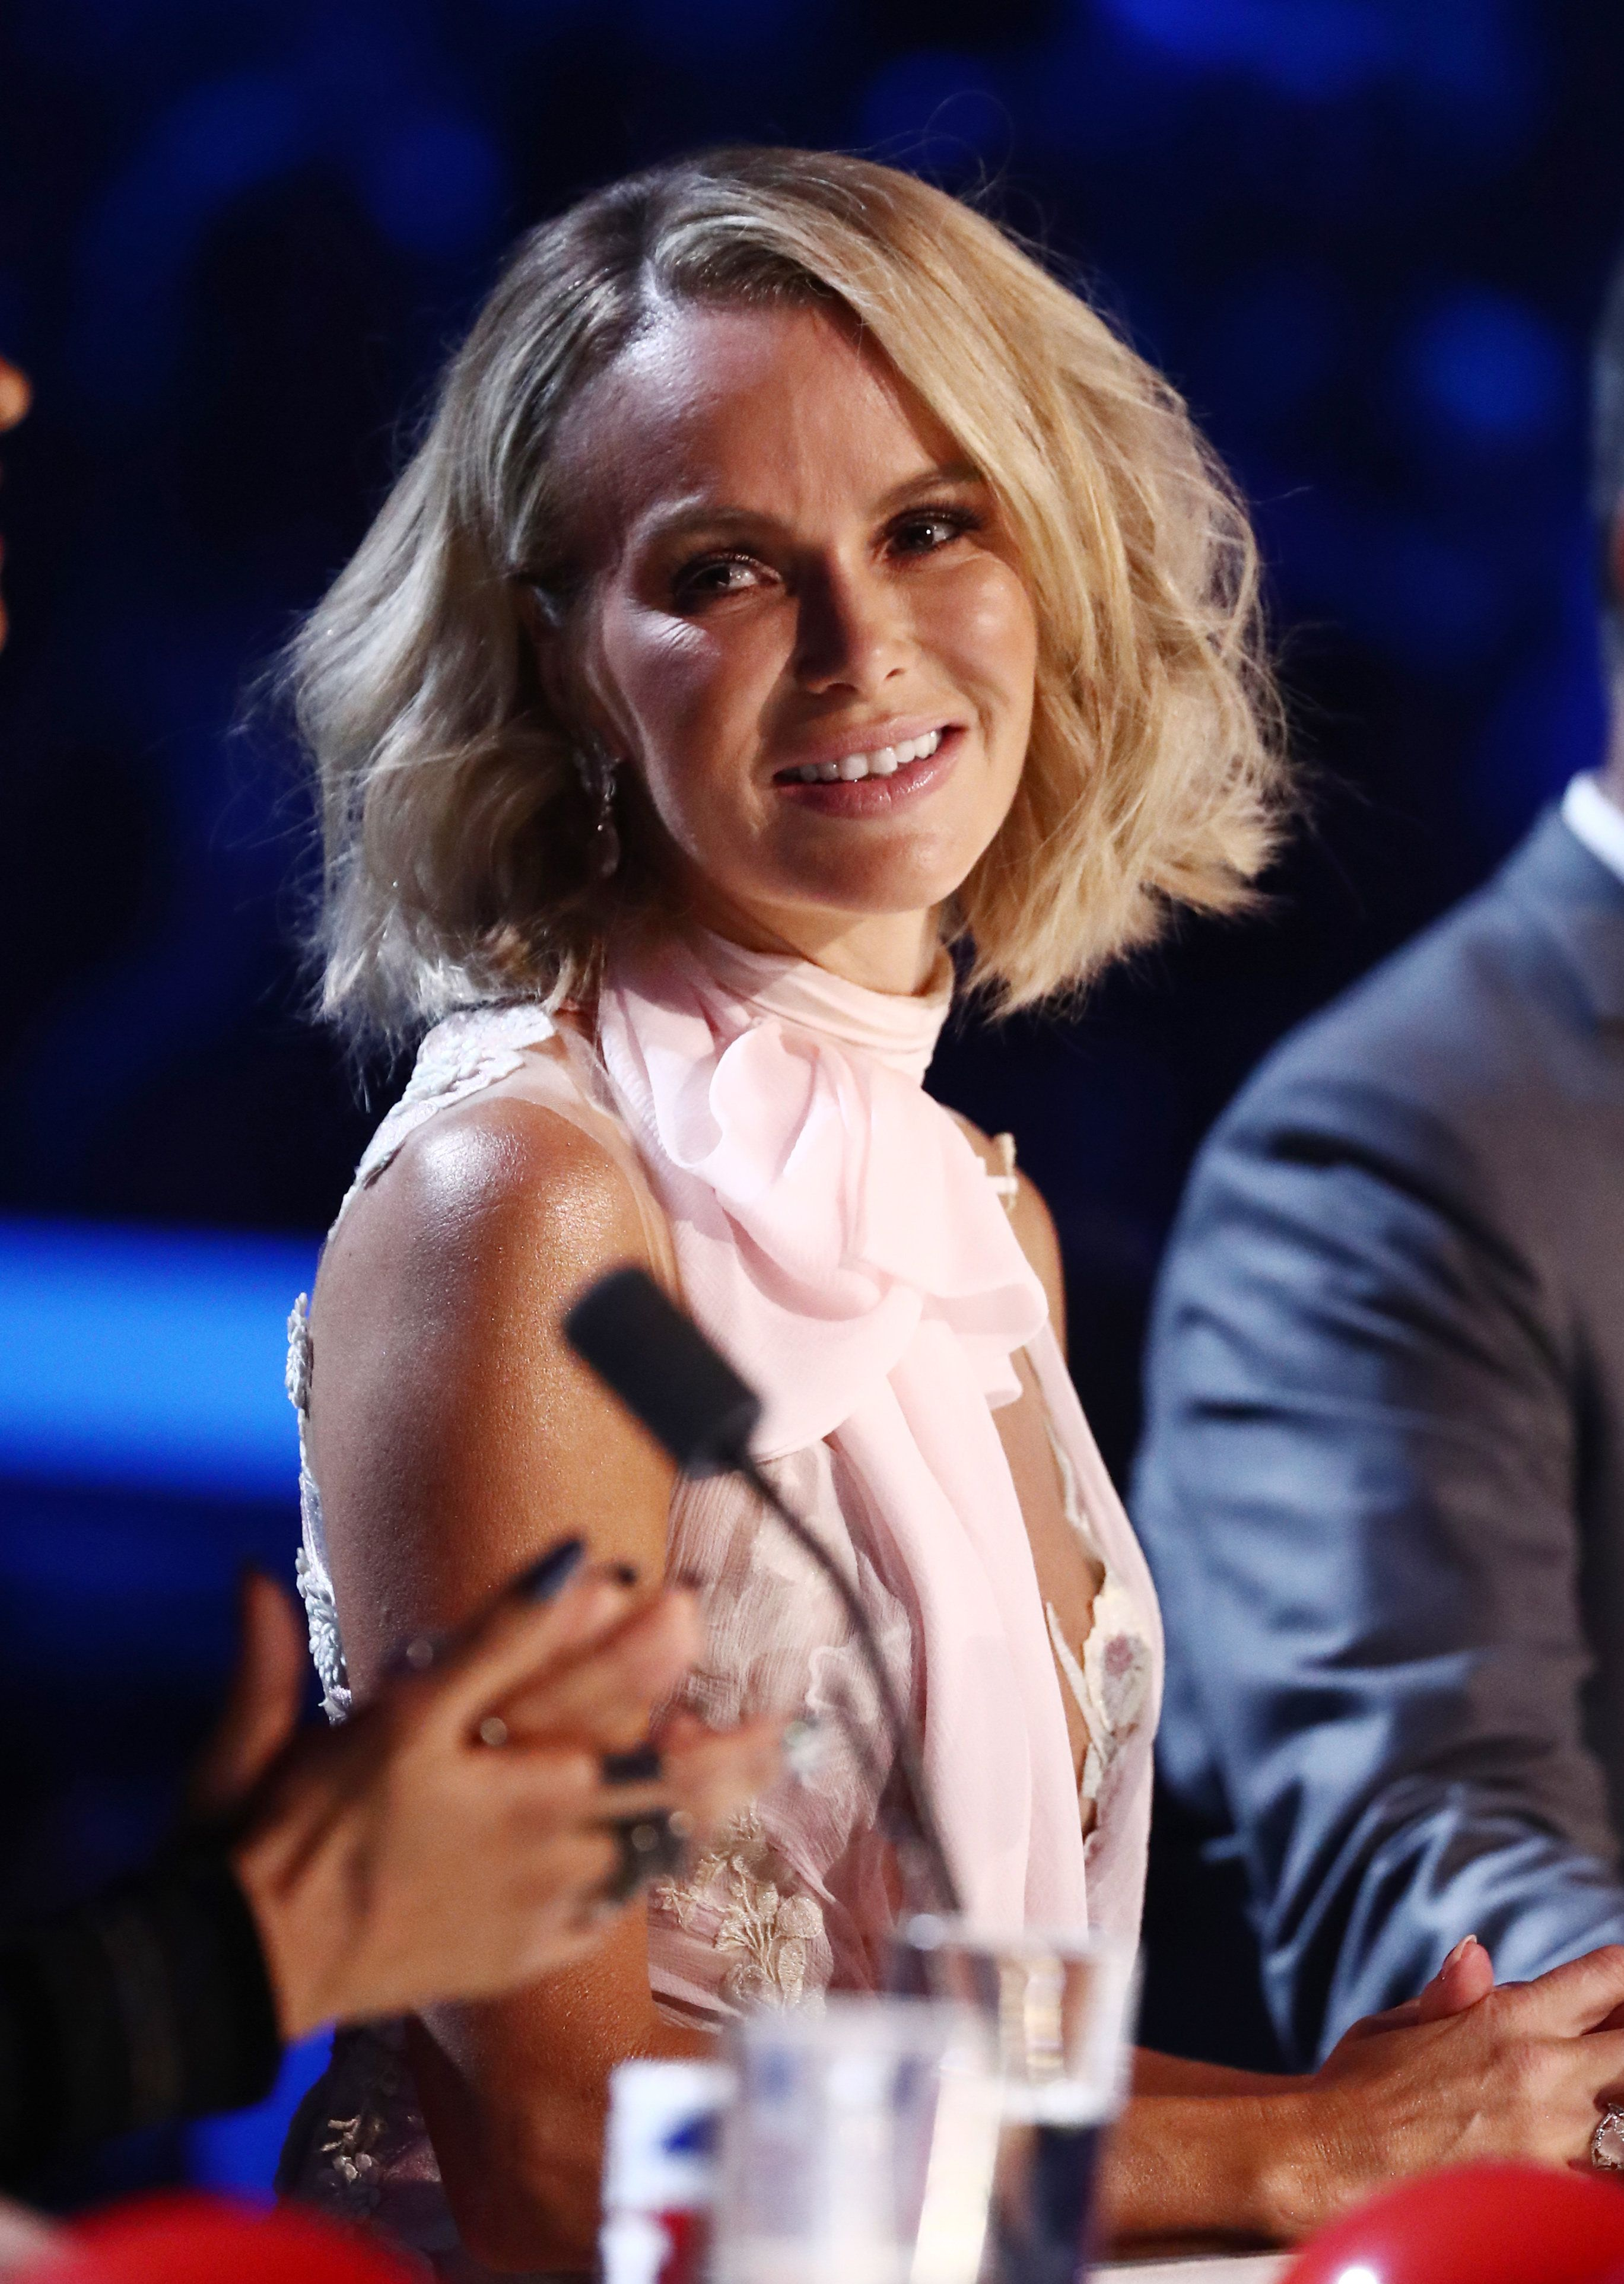 BGT's Amanda Holden Reveals Emotional Reaction After Missing People's Choir Family Reunion